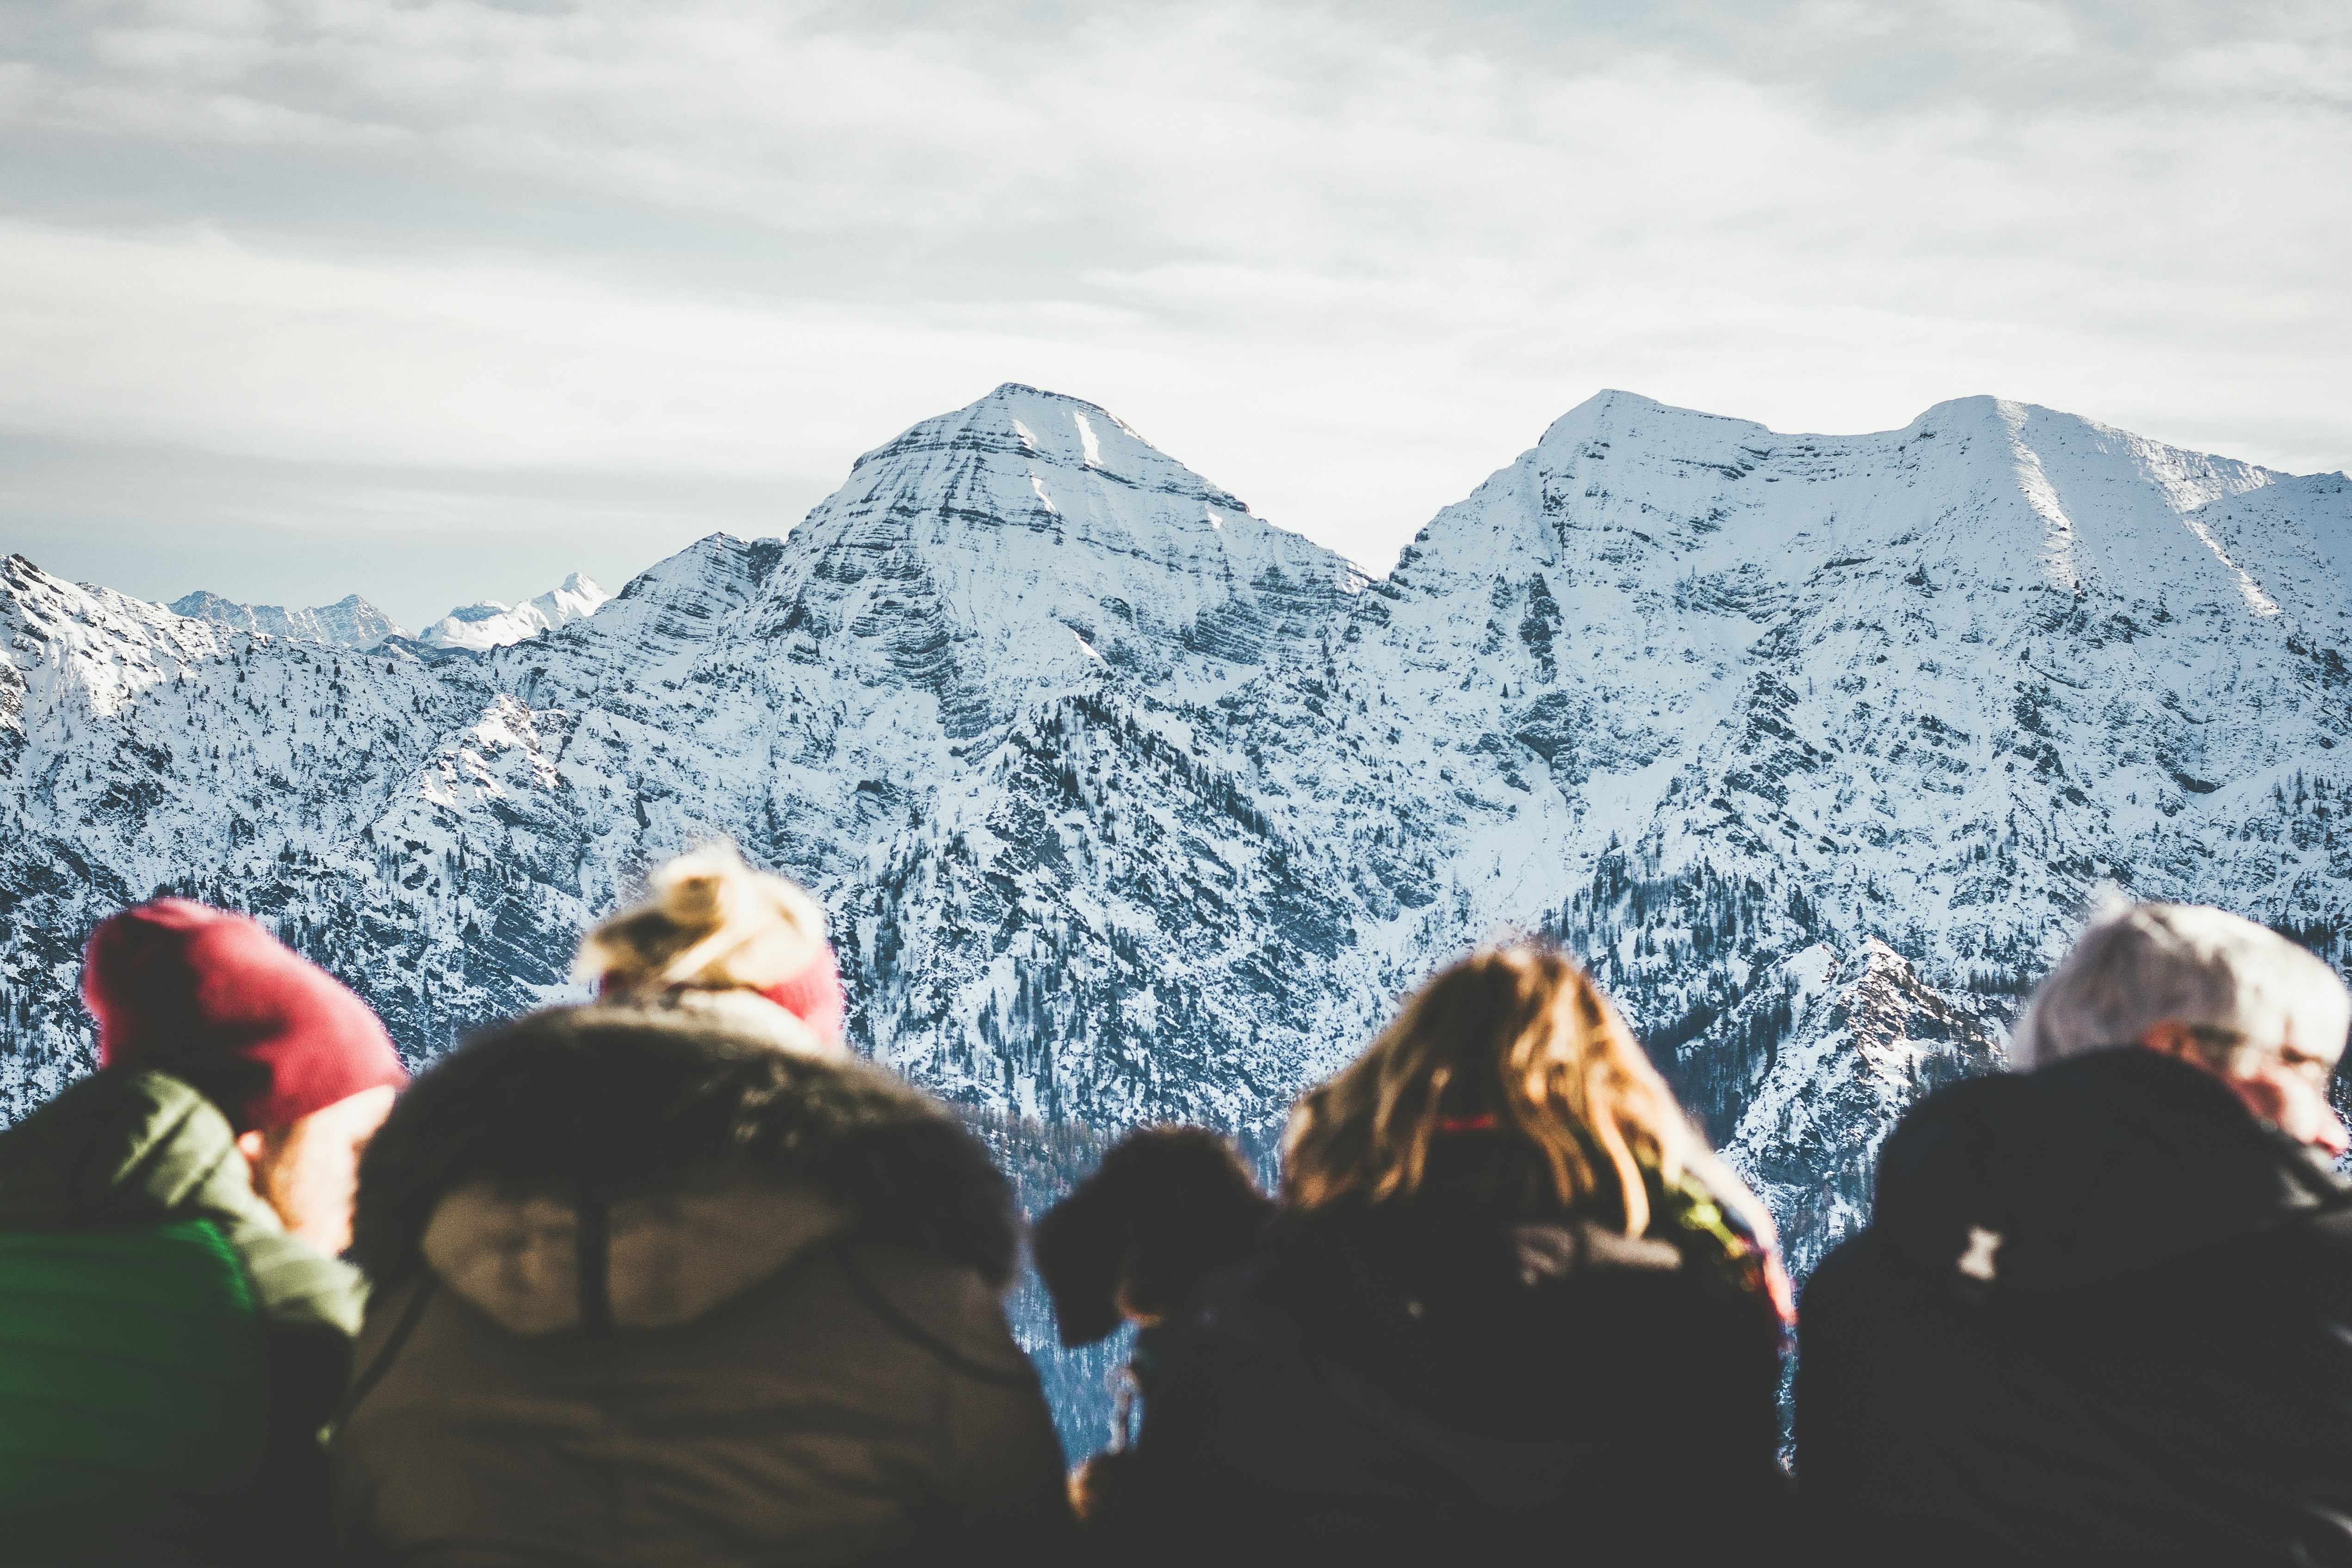 four people viewing snowy mountain during daytime